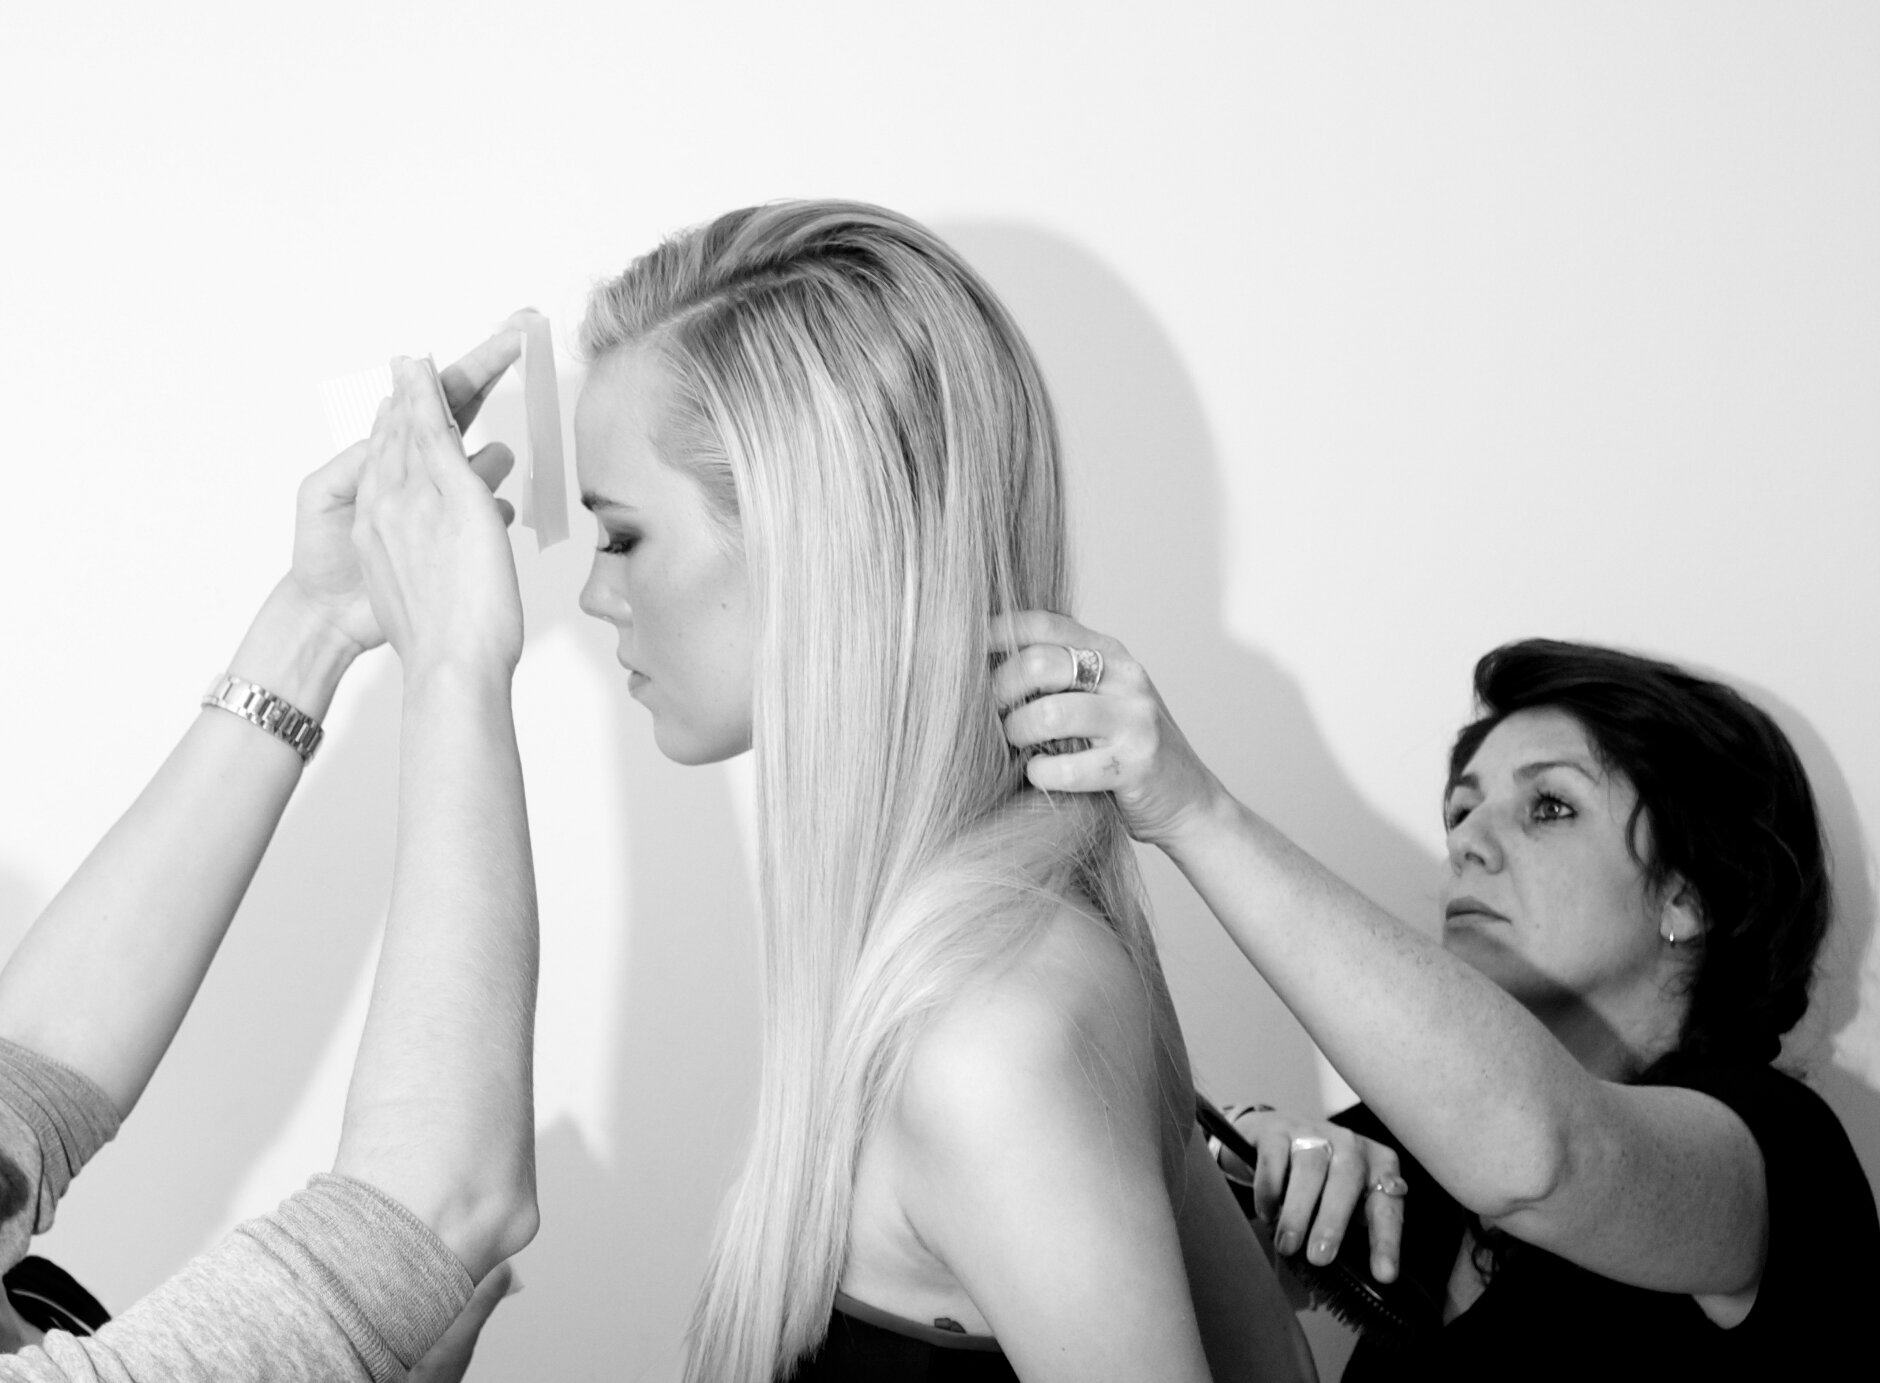 Backstage Model Hairstylist Fashion Show